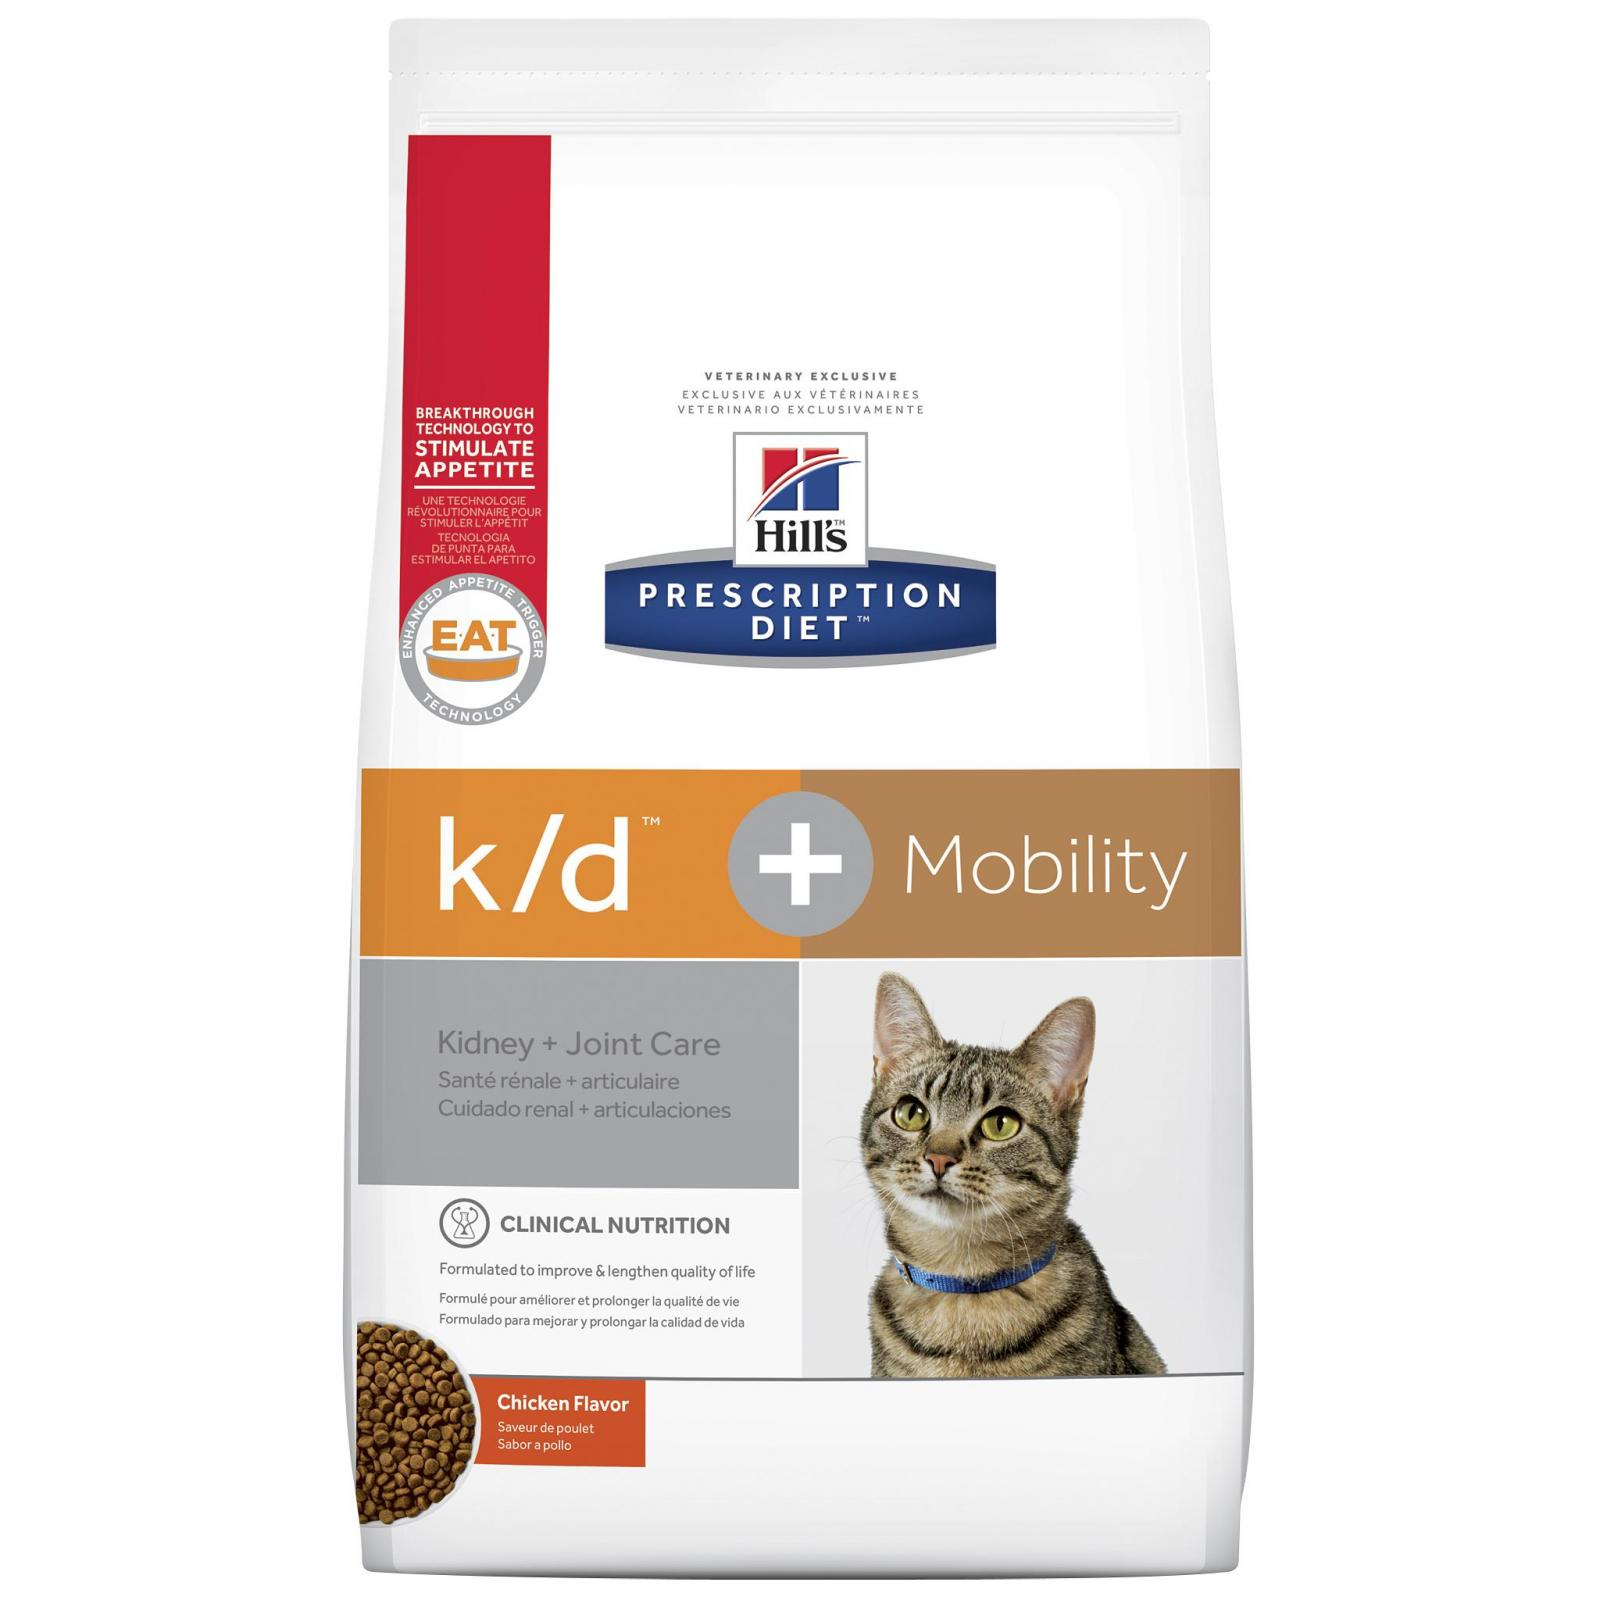 Hill's VET Hill's Prescription Diet K/D P lus Mobility Feline